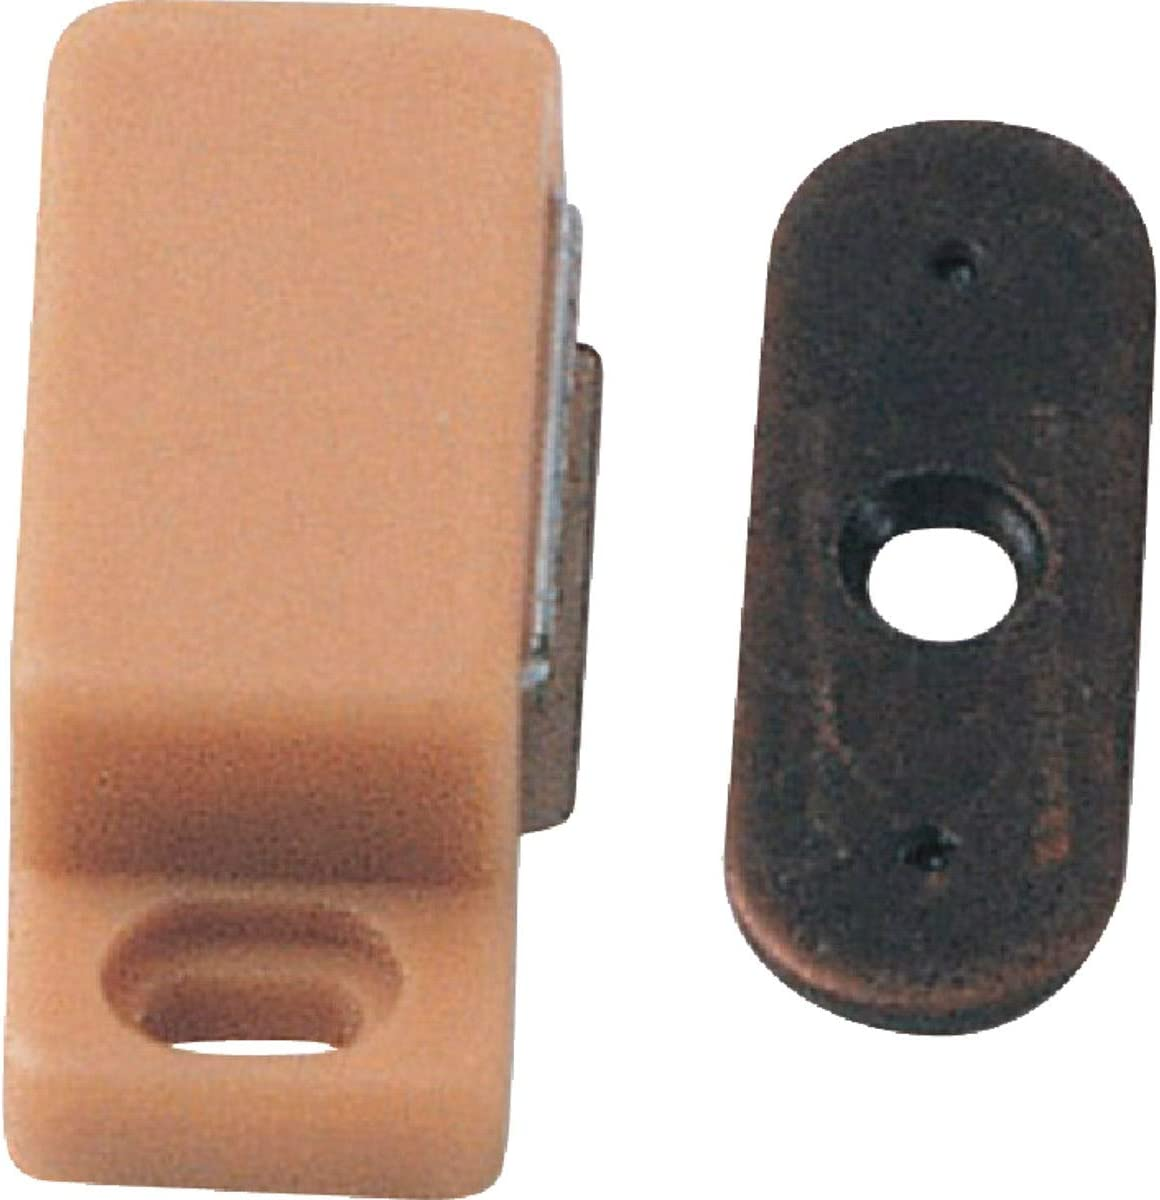 Laurey 5001 Tan Free shipping anywhere in the nation Catch Magnetic Plastic New product! New type